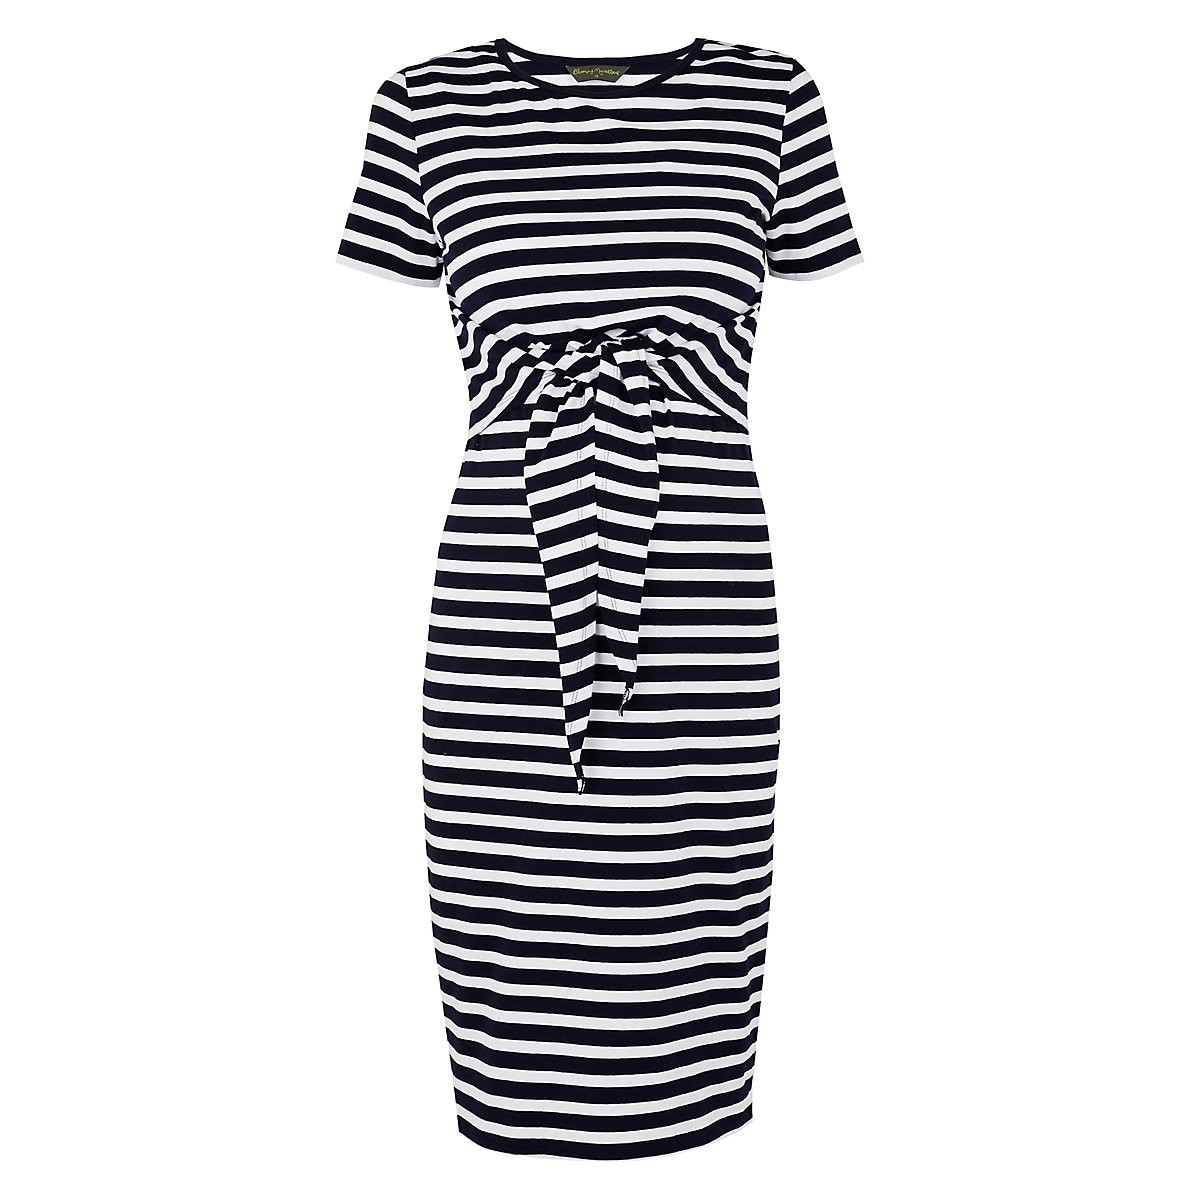 162858ea5793a Blooming Marvellous Navy Striped Nursing Dress - Reviews